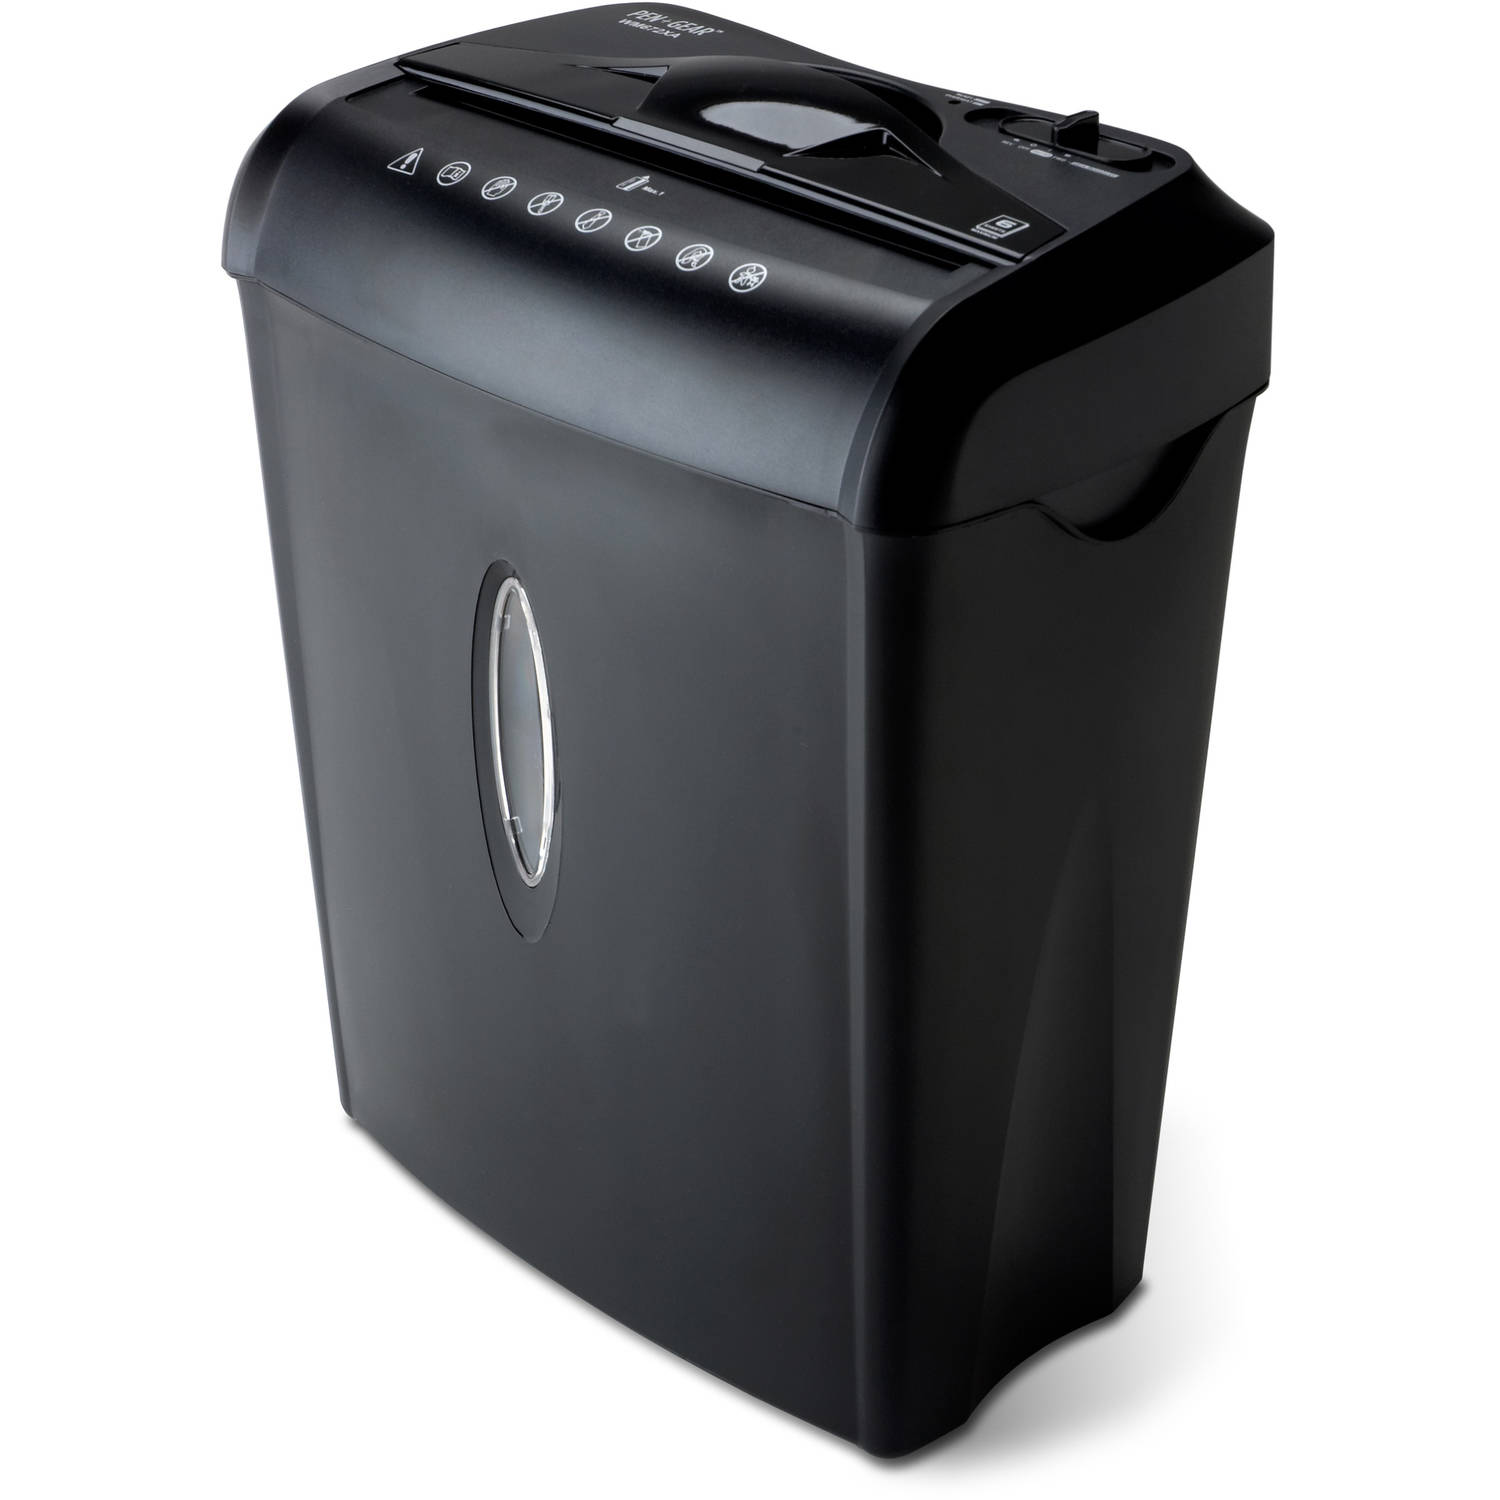 Pen Gear 6-Sheet Cross Shredder